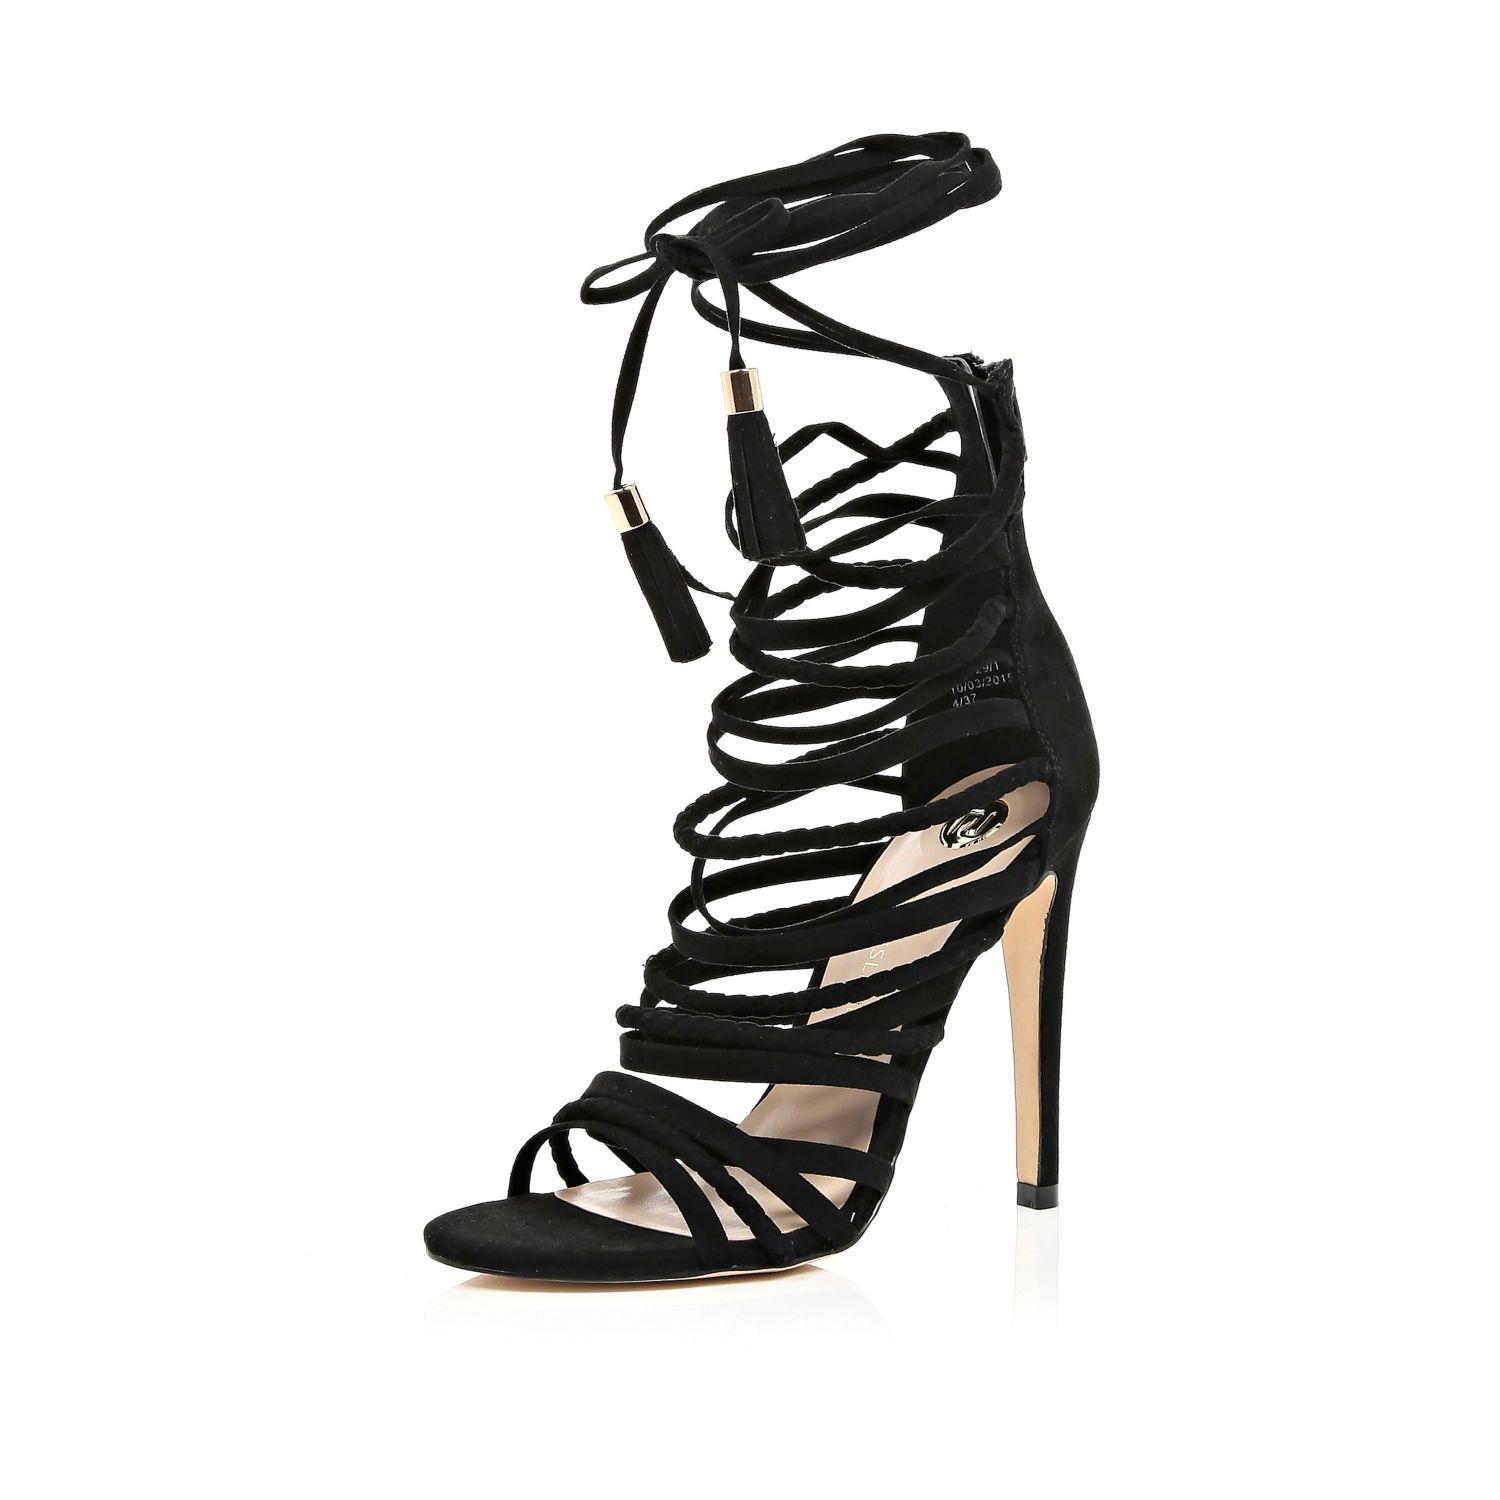 aedb56a056d River Island Black Strappy Tassel Heeled Sandals in Black - Lyst